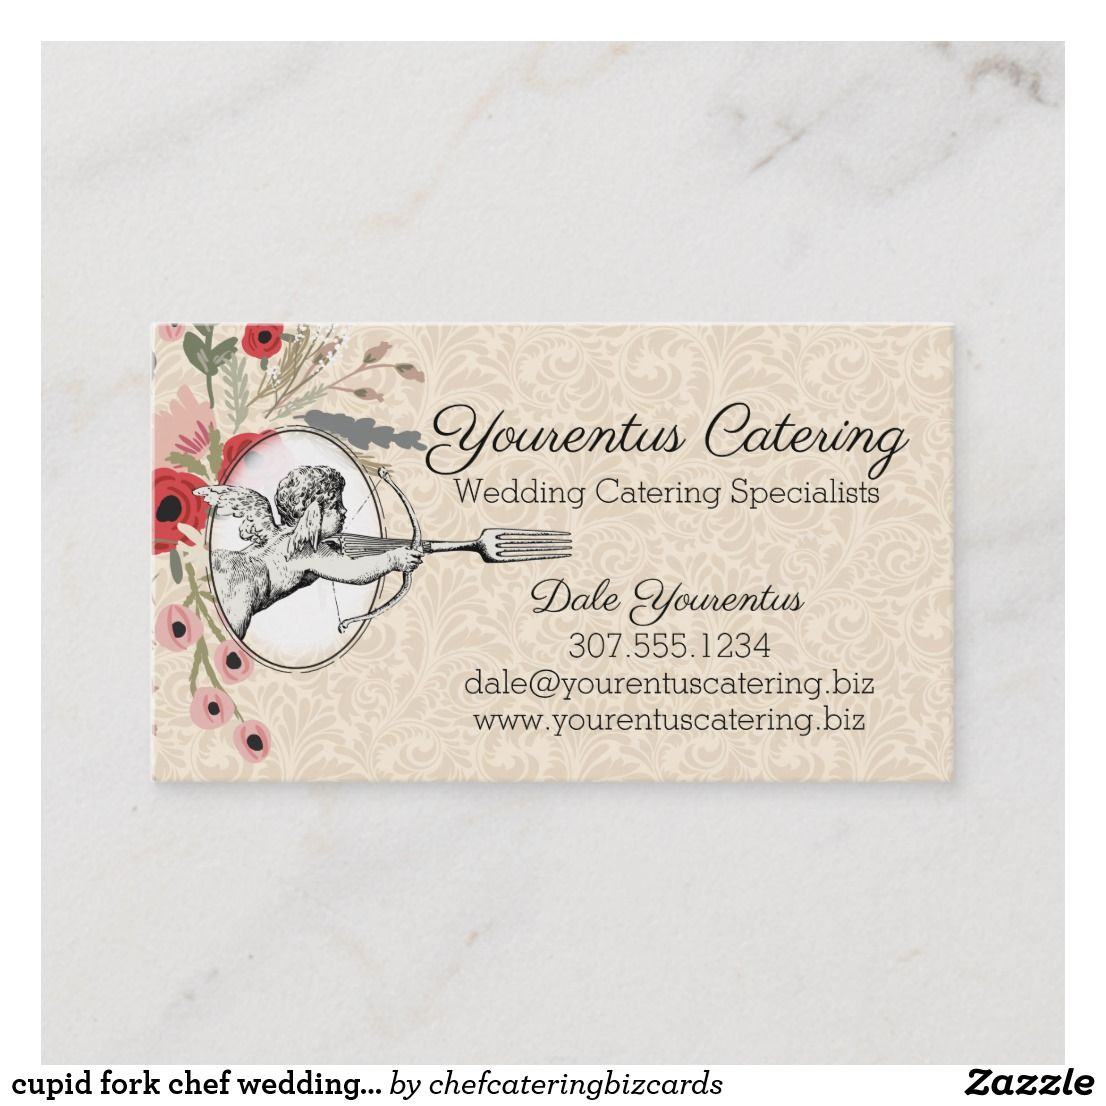 Cupid Fork Chef Wedding Catering Business Card Zazzle Com Catering Business Cards Wedding Catering Menu Wedding Catering Near Me